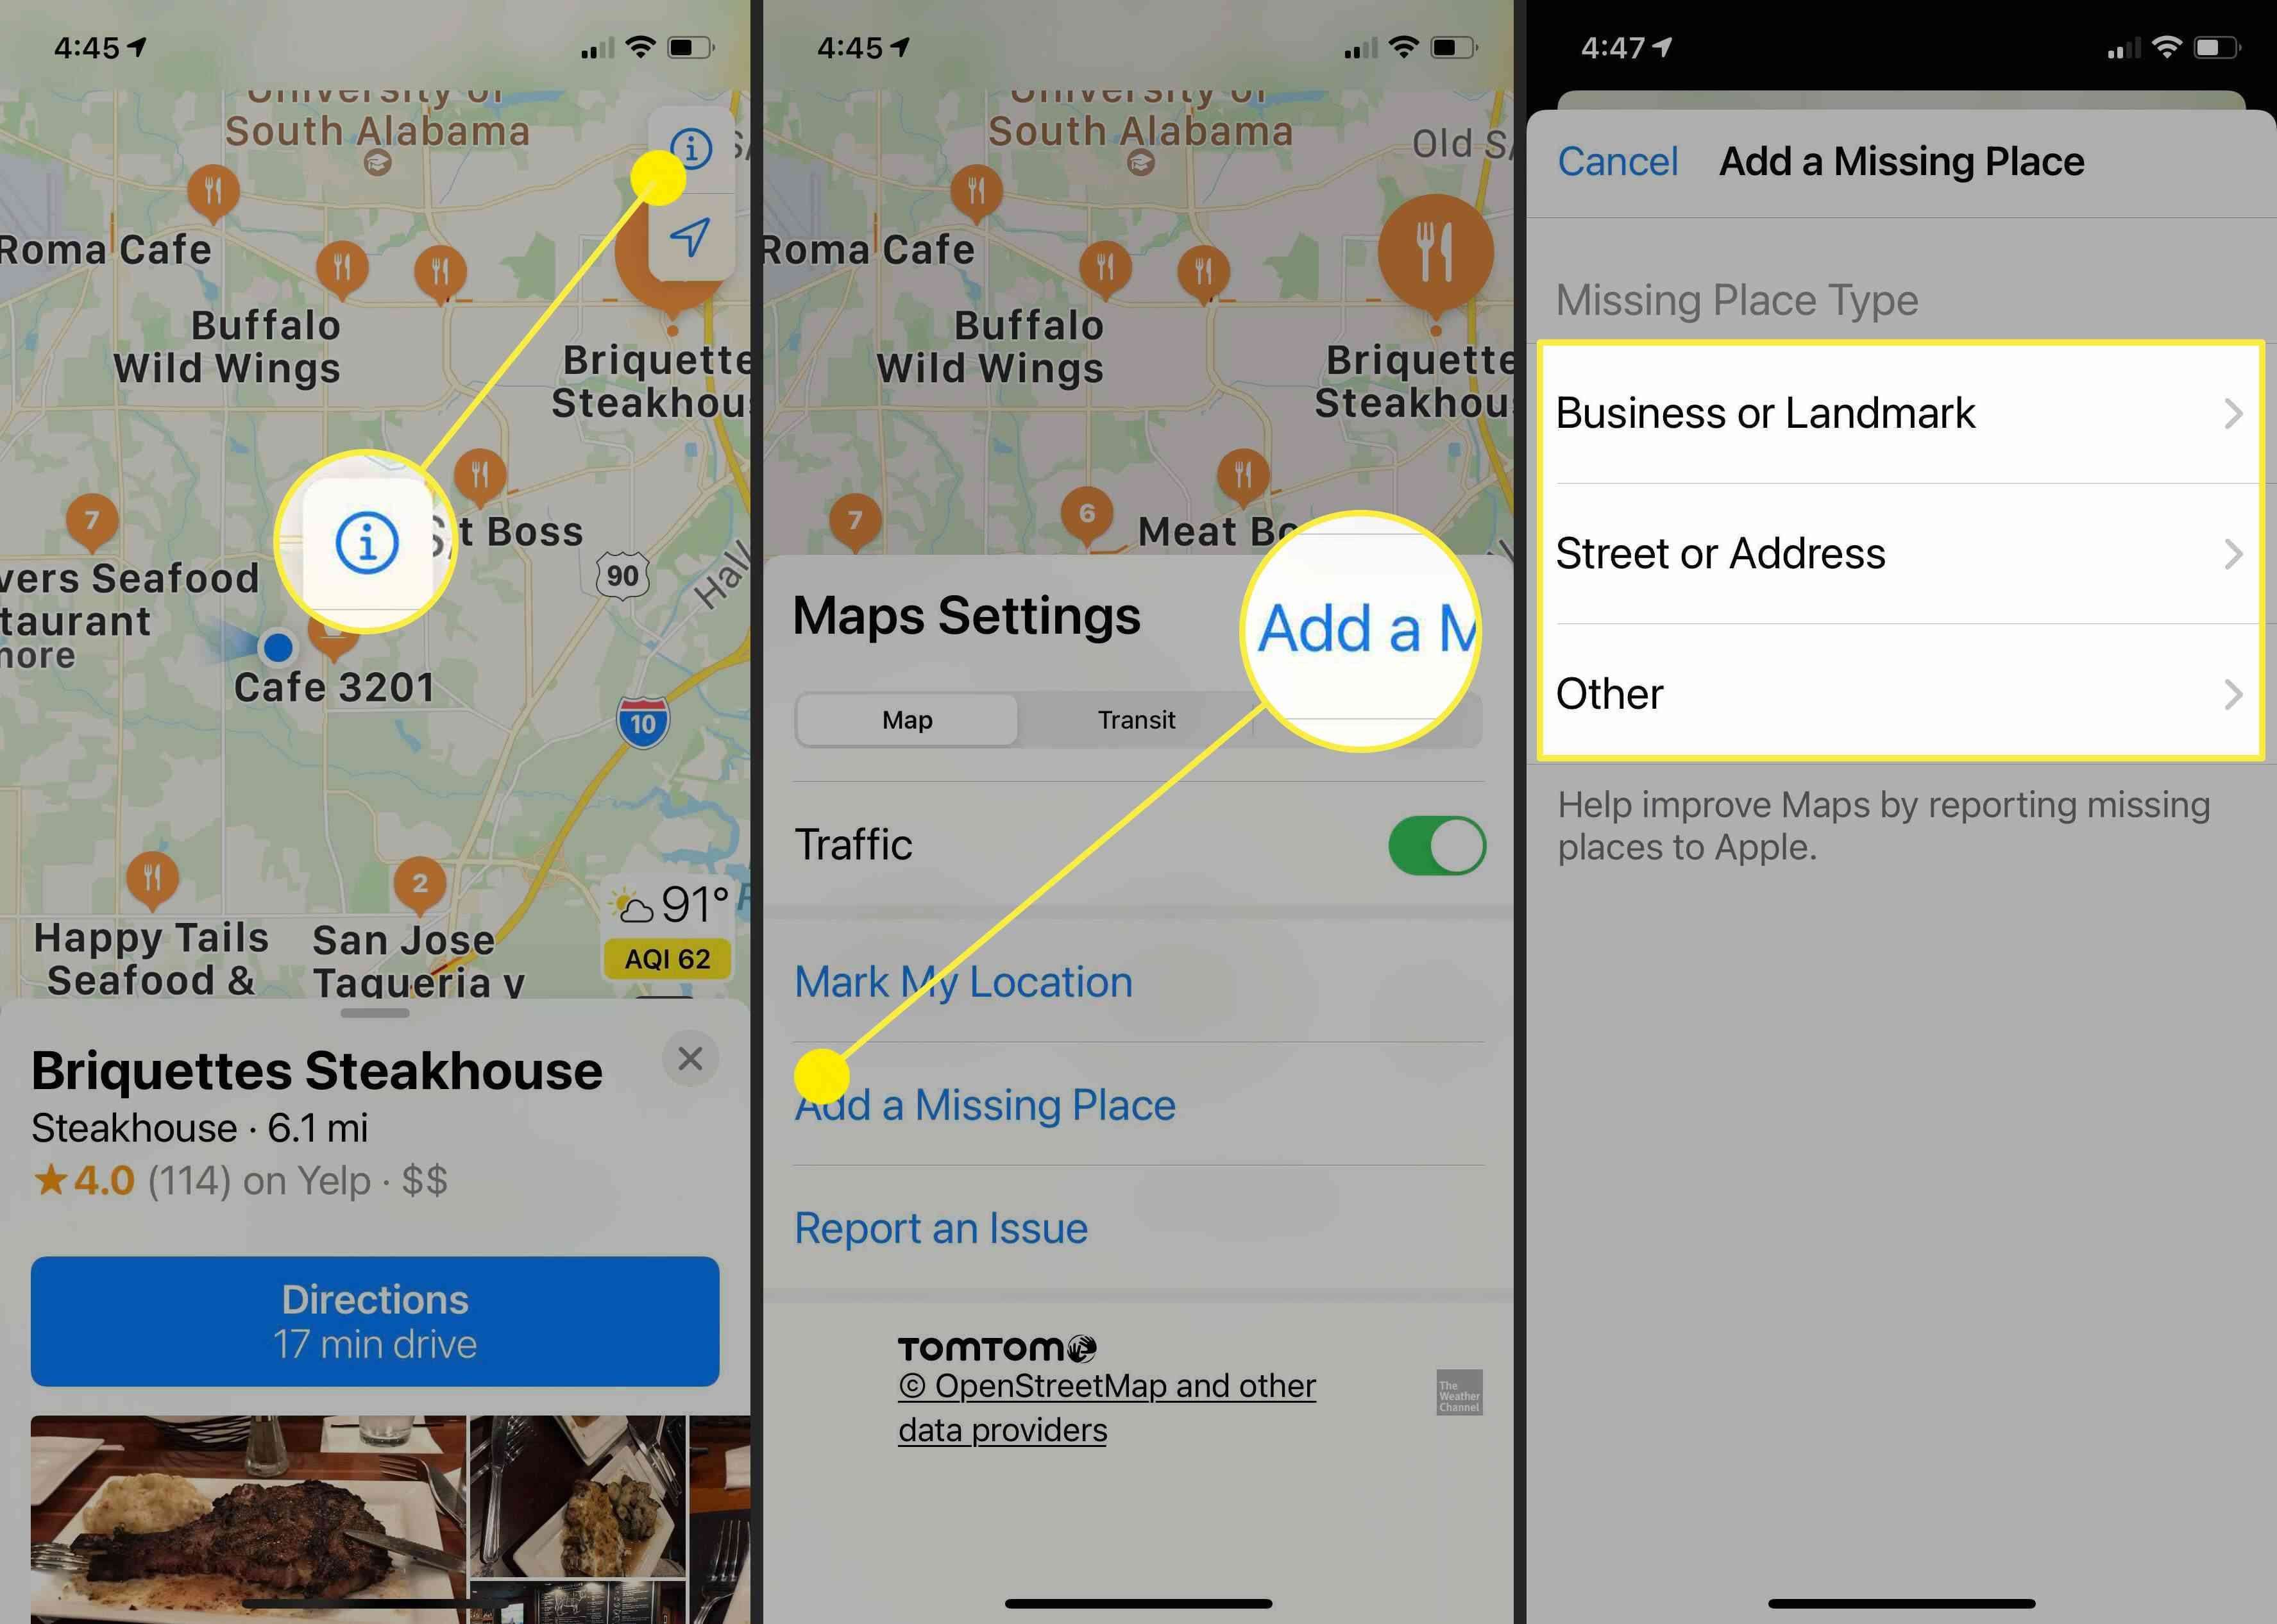 Screenshots showing how to add information or suggest changes on Apple Maps.